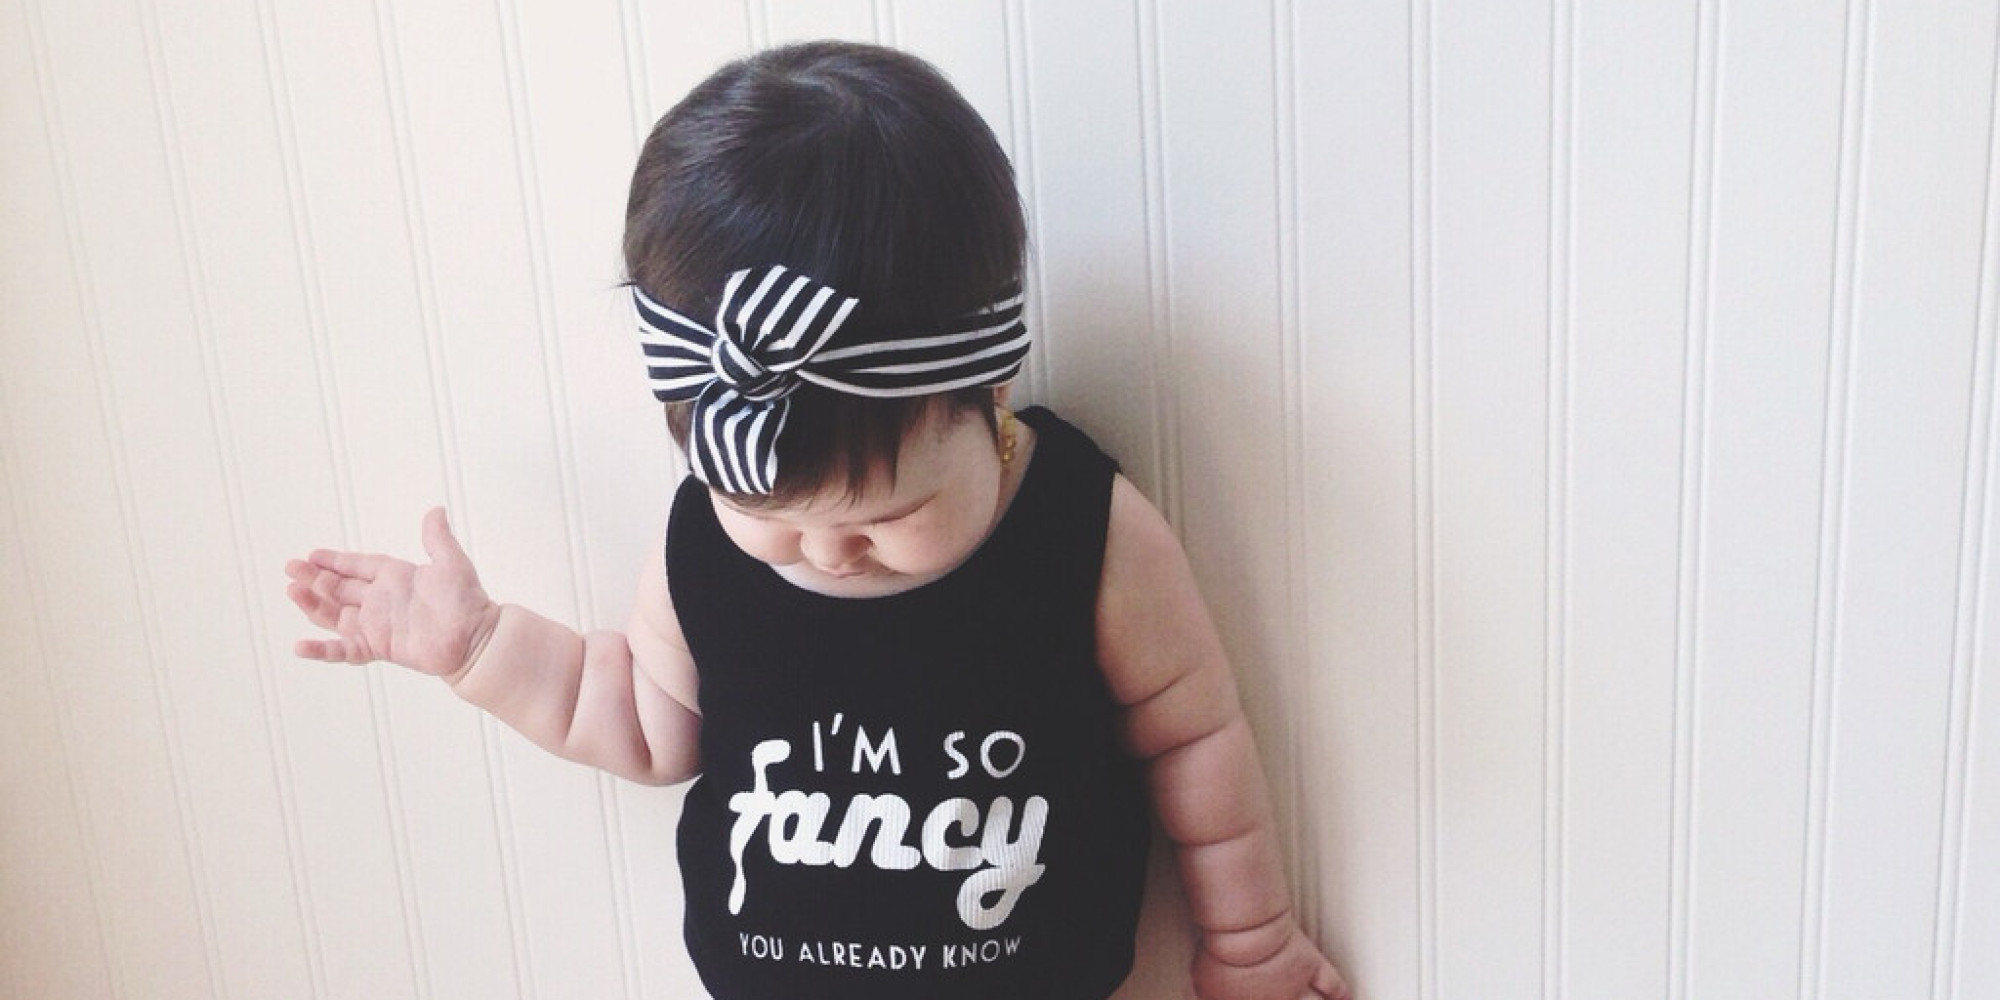 Cute Stylish Child Girl Wallpaper 11 Cool Kids Clothing Companies For Your Cuties